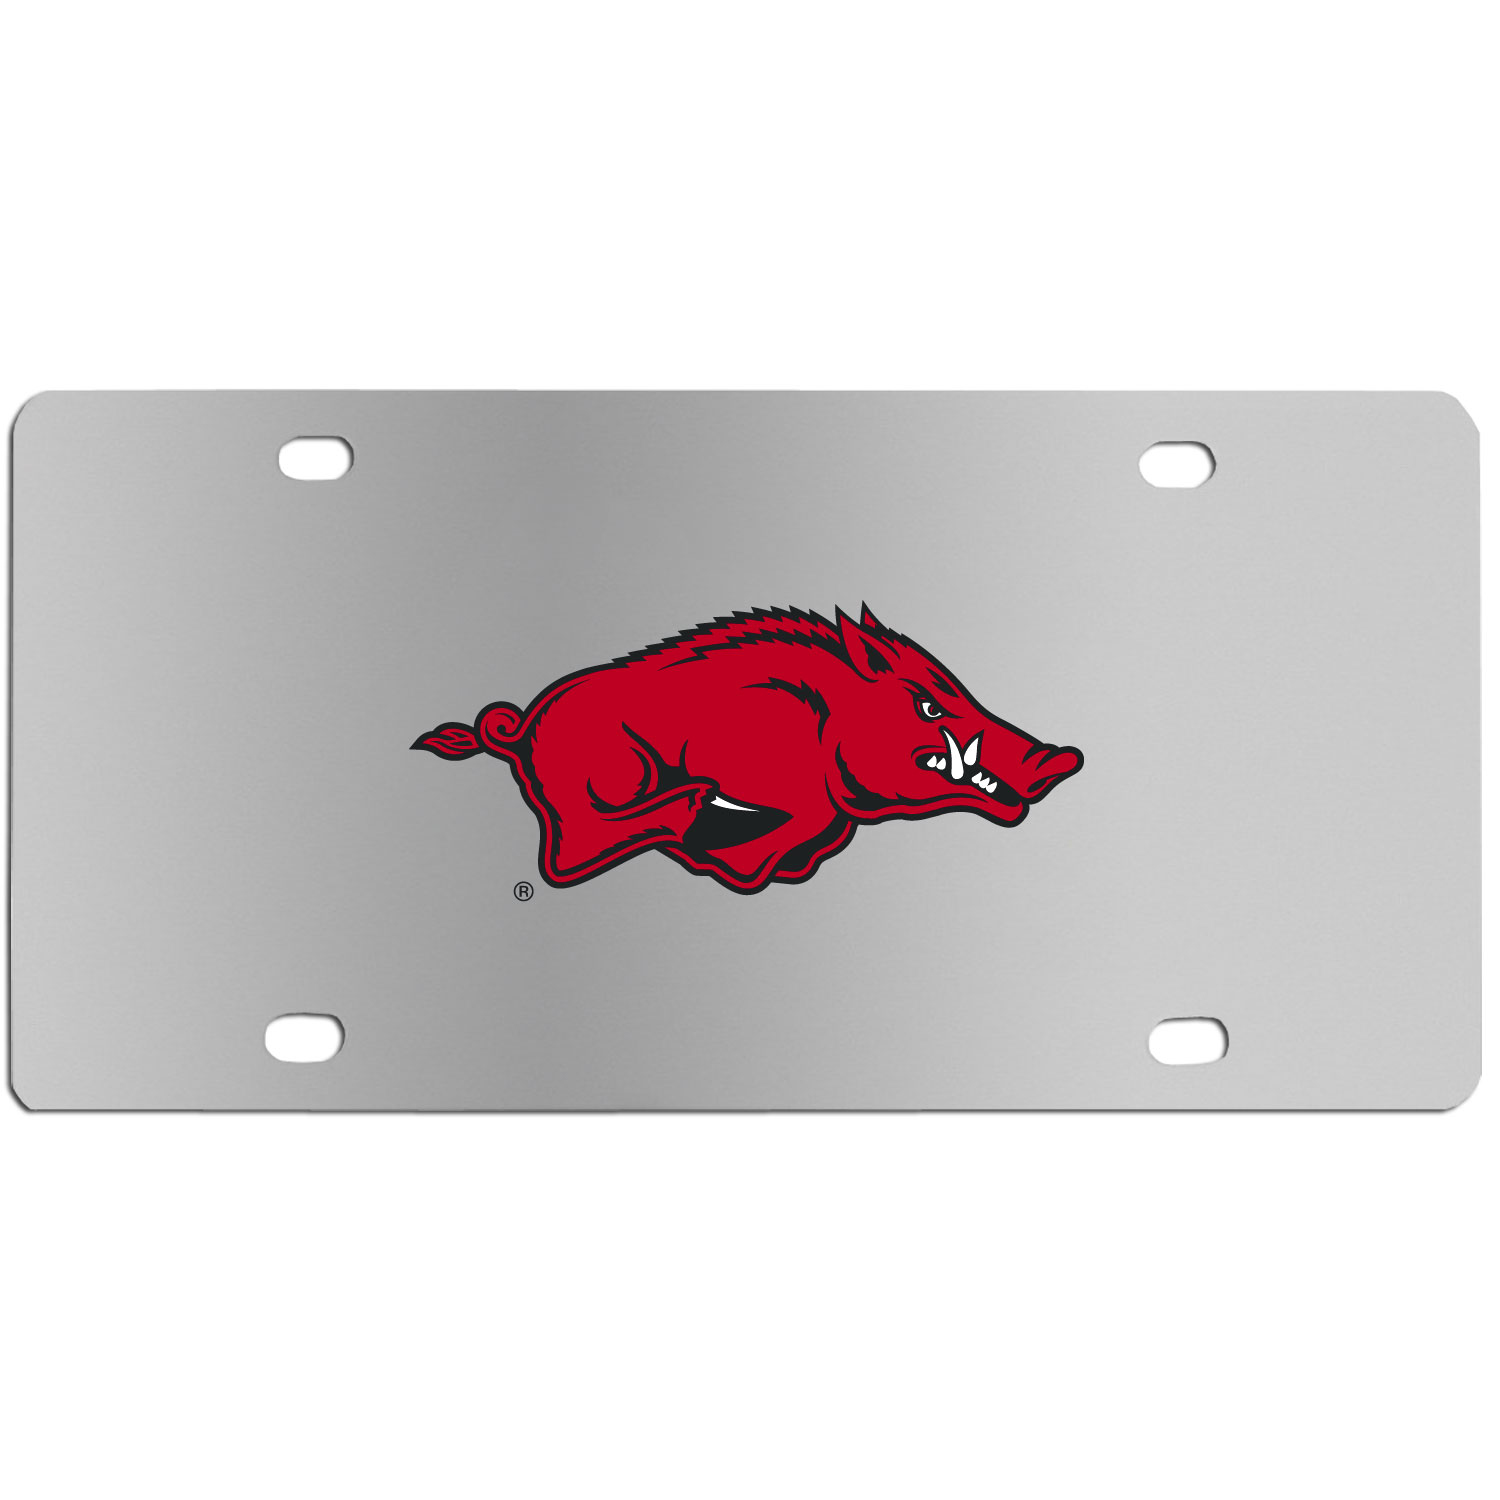 Arkansas Razorbacks Steel License Plate Wall Plaque - This high-quality stainless steel license plate features a detailed team logo on a the polished surface. The attractive plate is perfect for wall mounting in your home or office to become the perfect die-hard Arkansas Razorbacks fan decor.